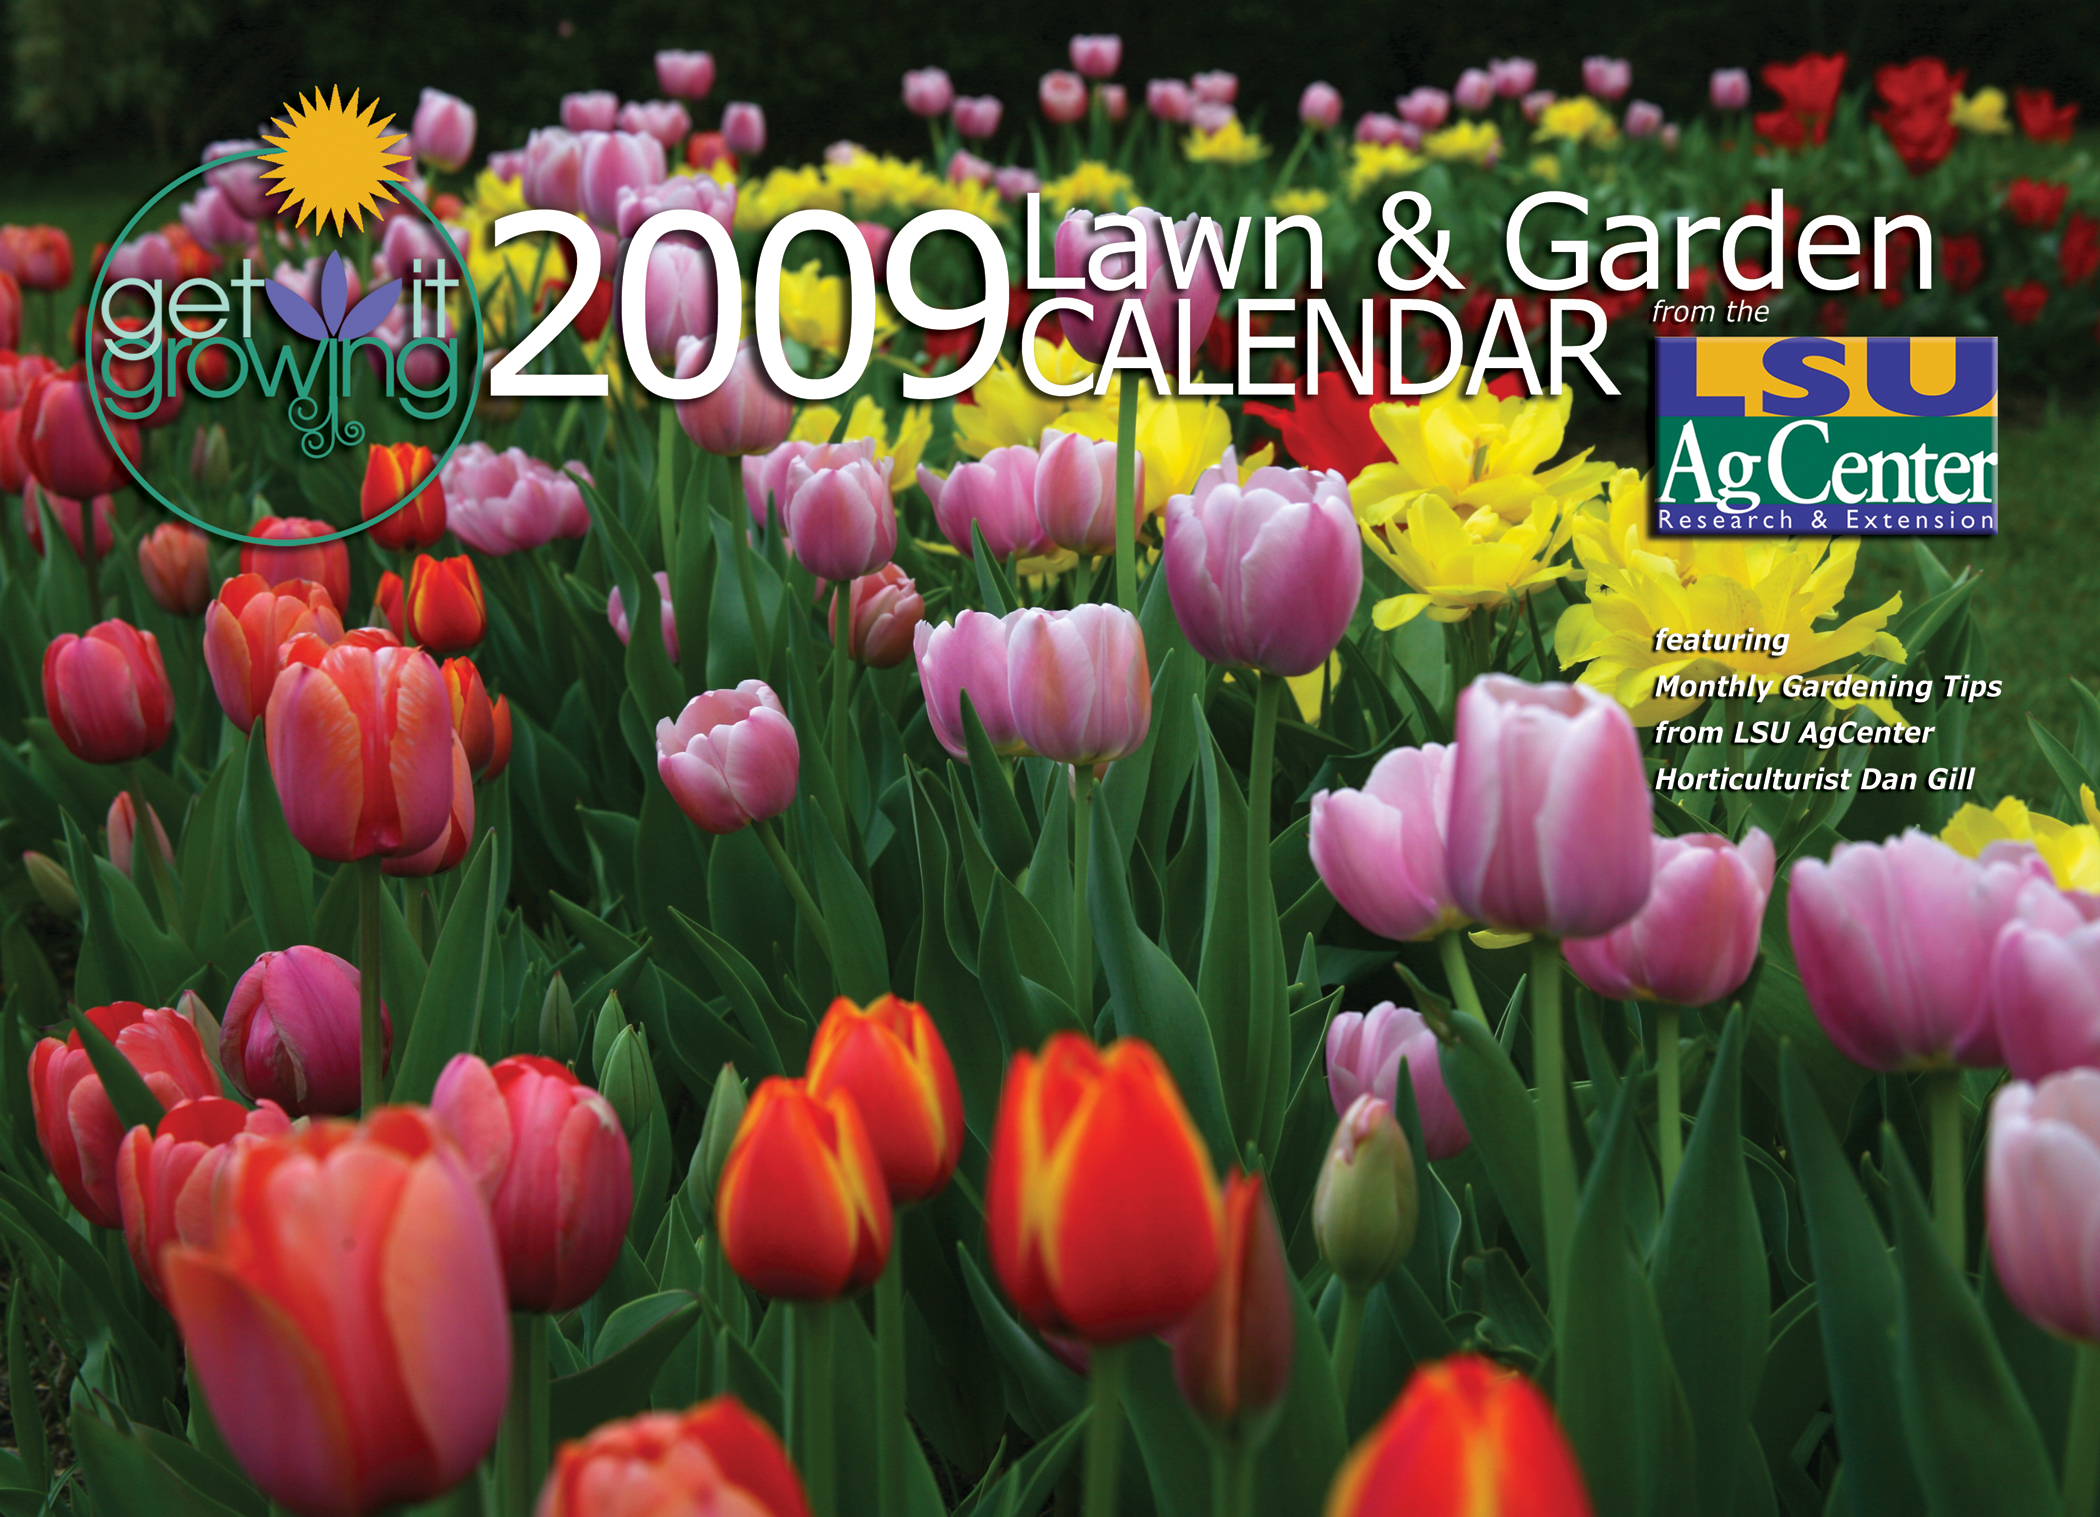 2009 Get It Growing Lawn and Garden Calendar Cover Photo